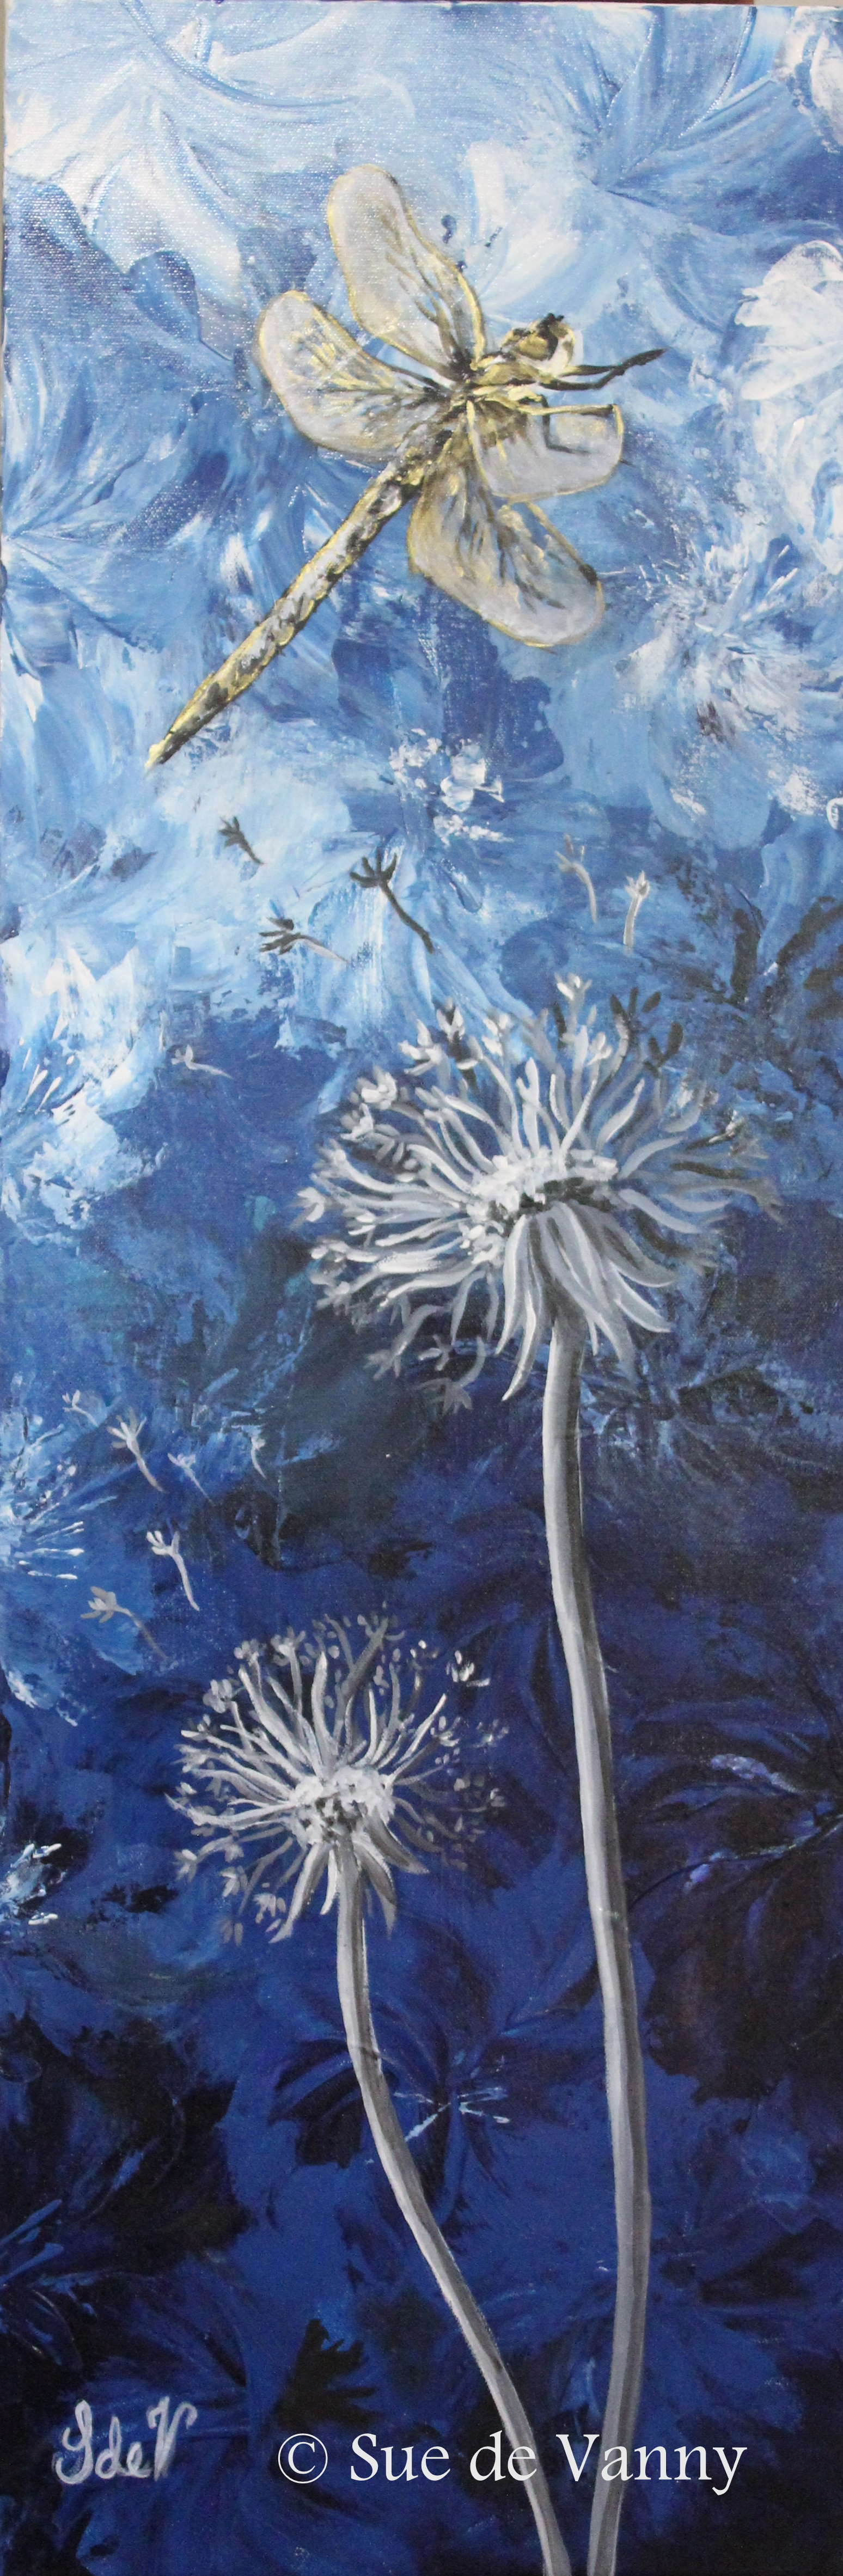 Dragonfly and Dandelions - 2 Acrylic on Canvas 30 x 90 cm ...